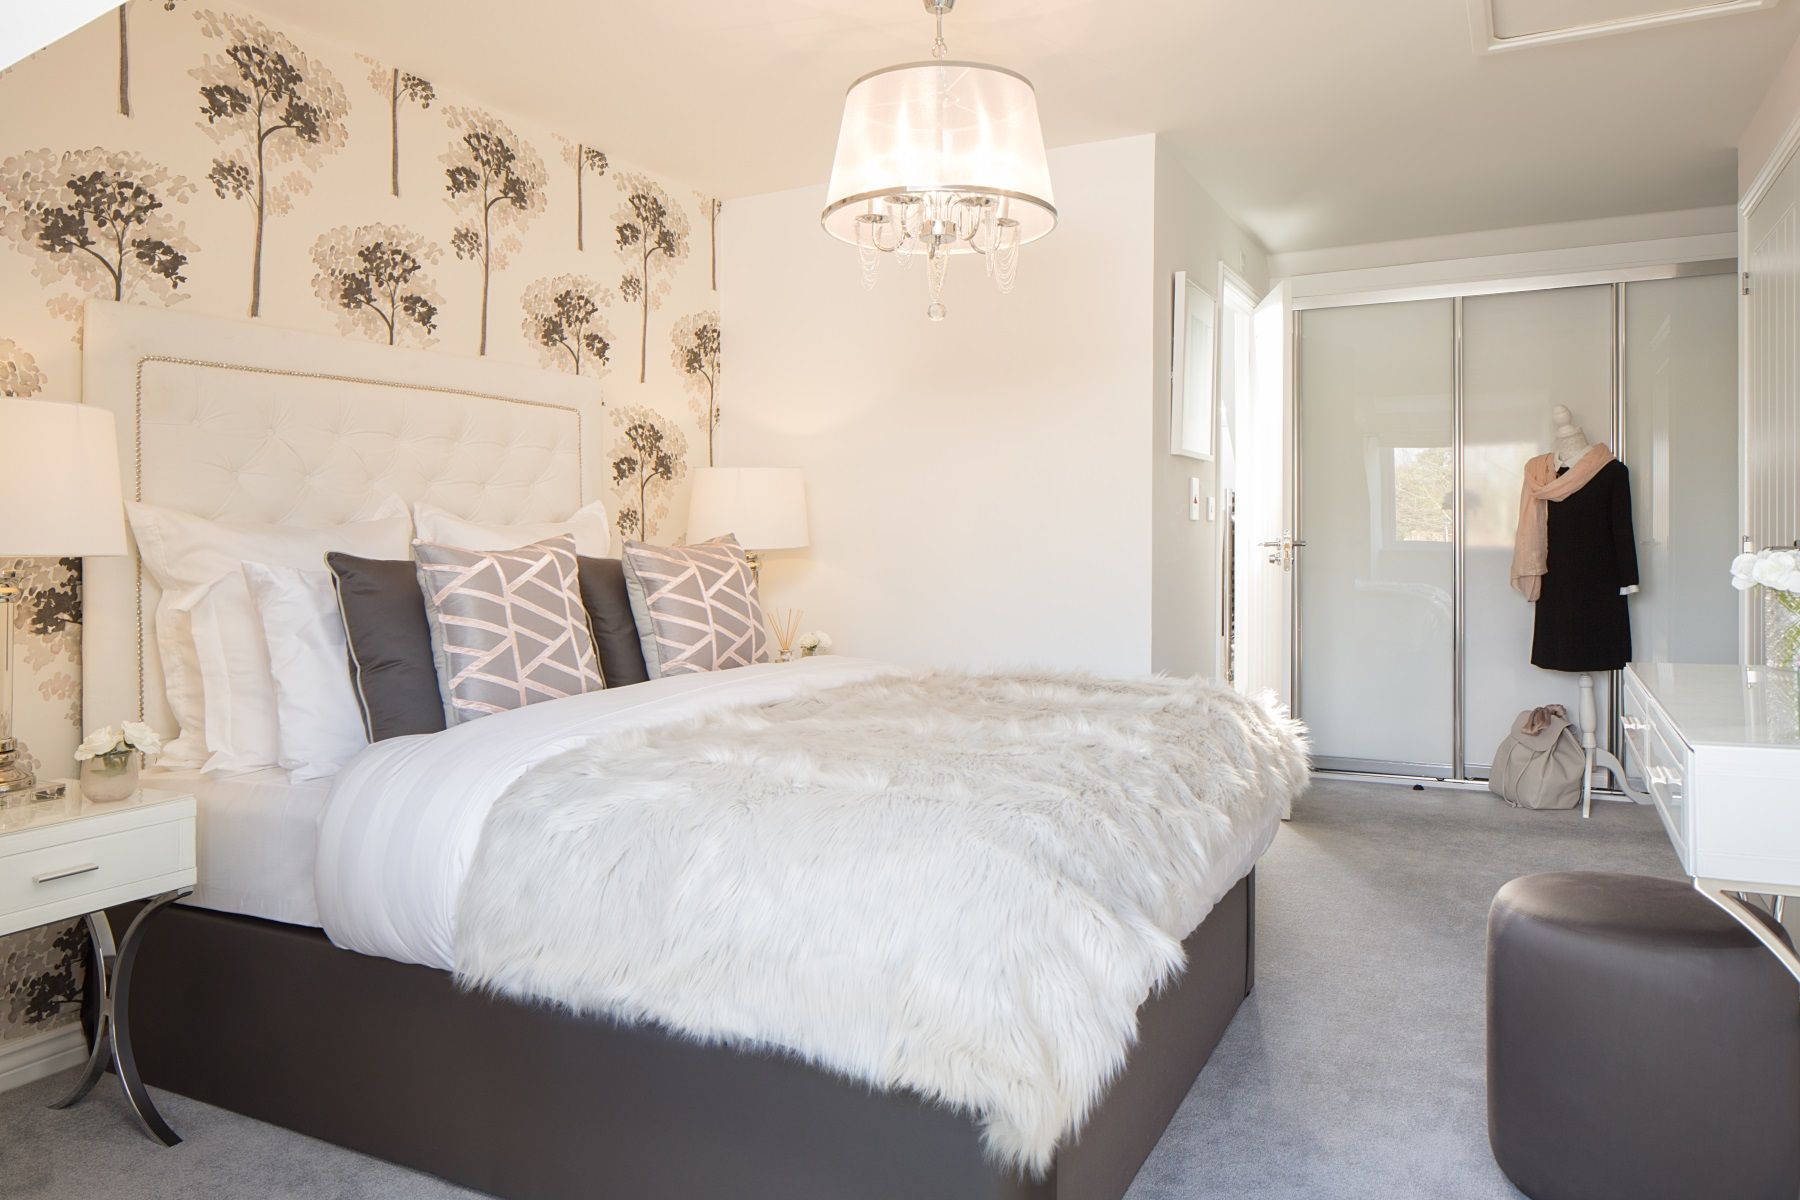 TW Exeter - Plumb Park - Withycome example bedroom